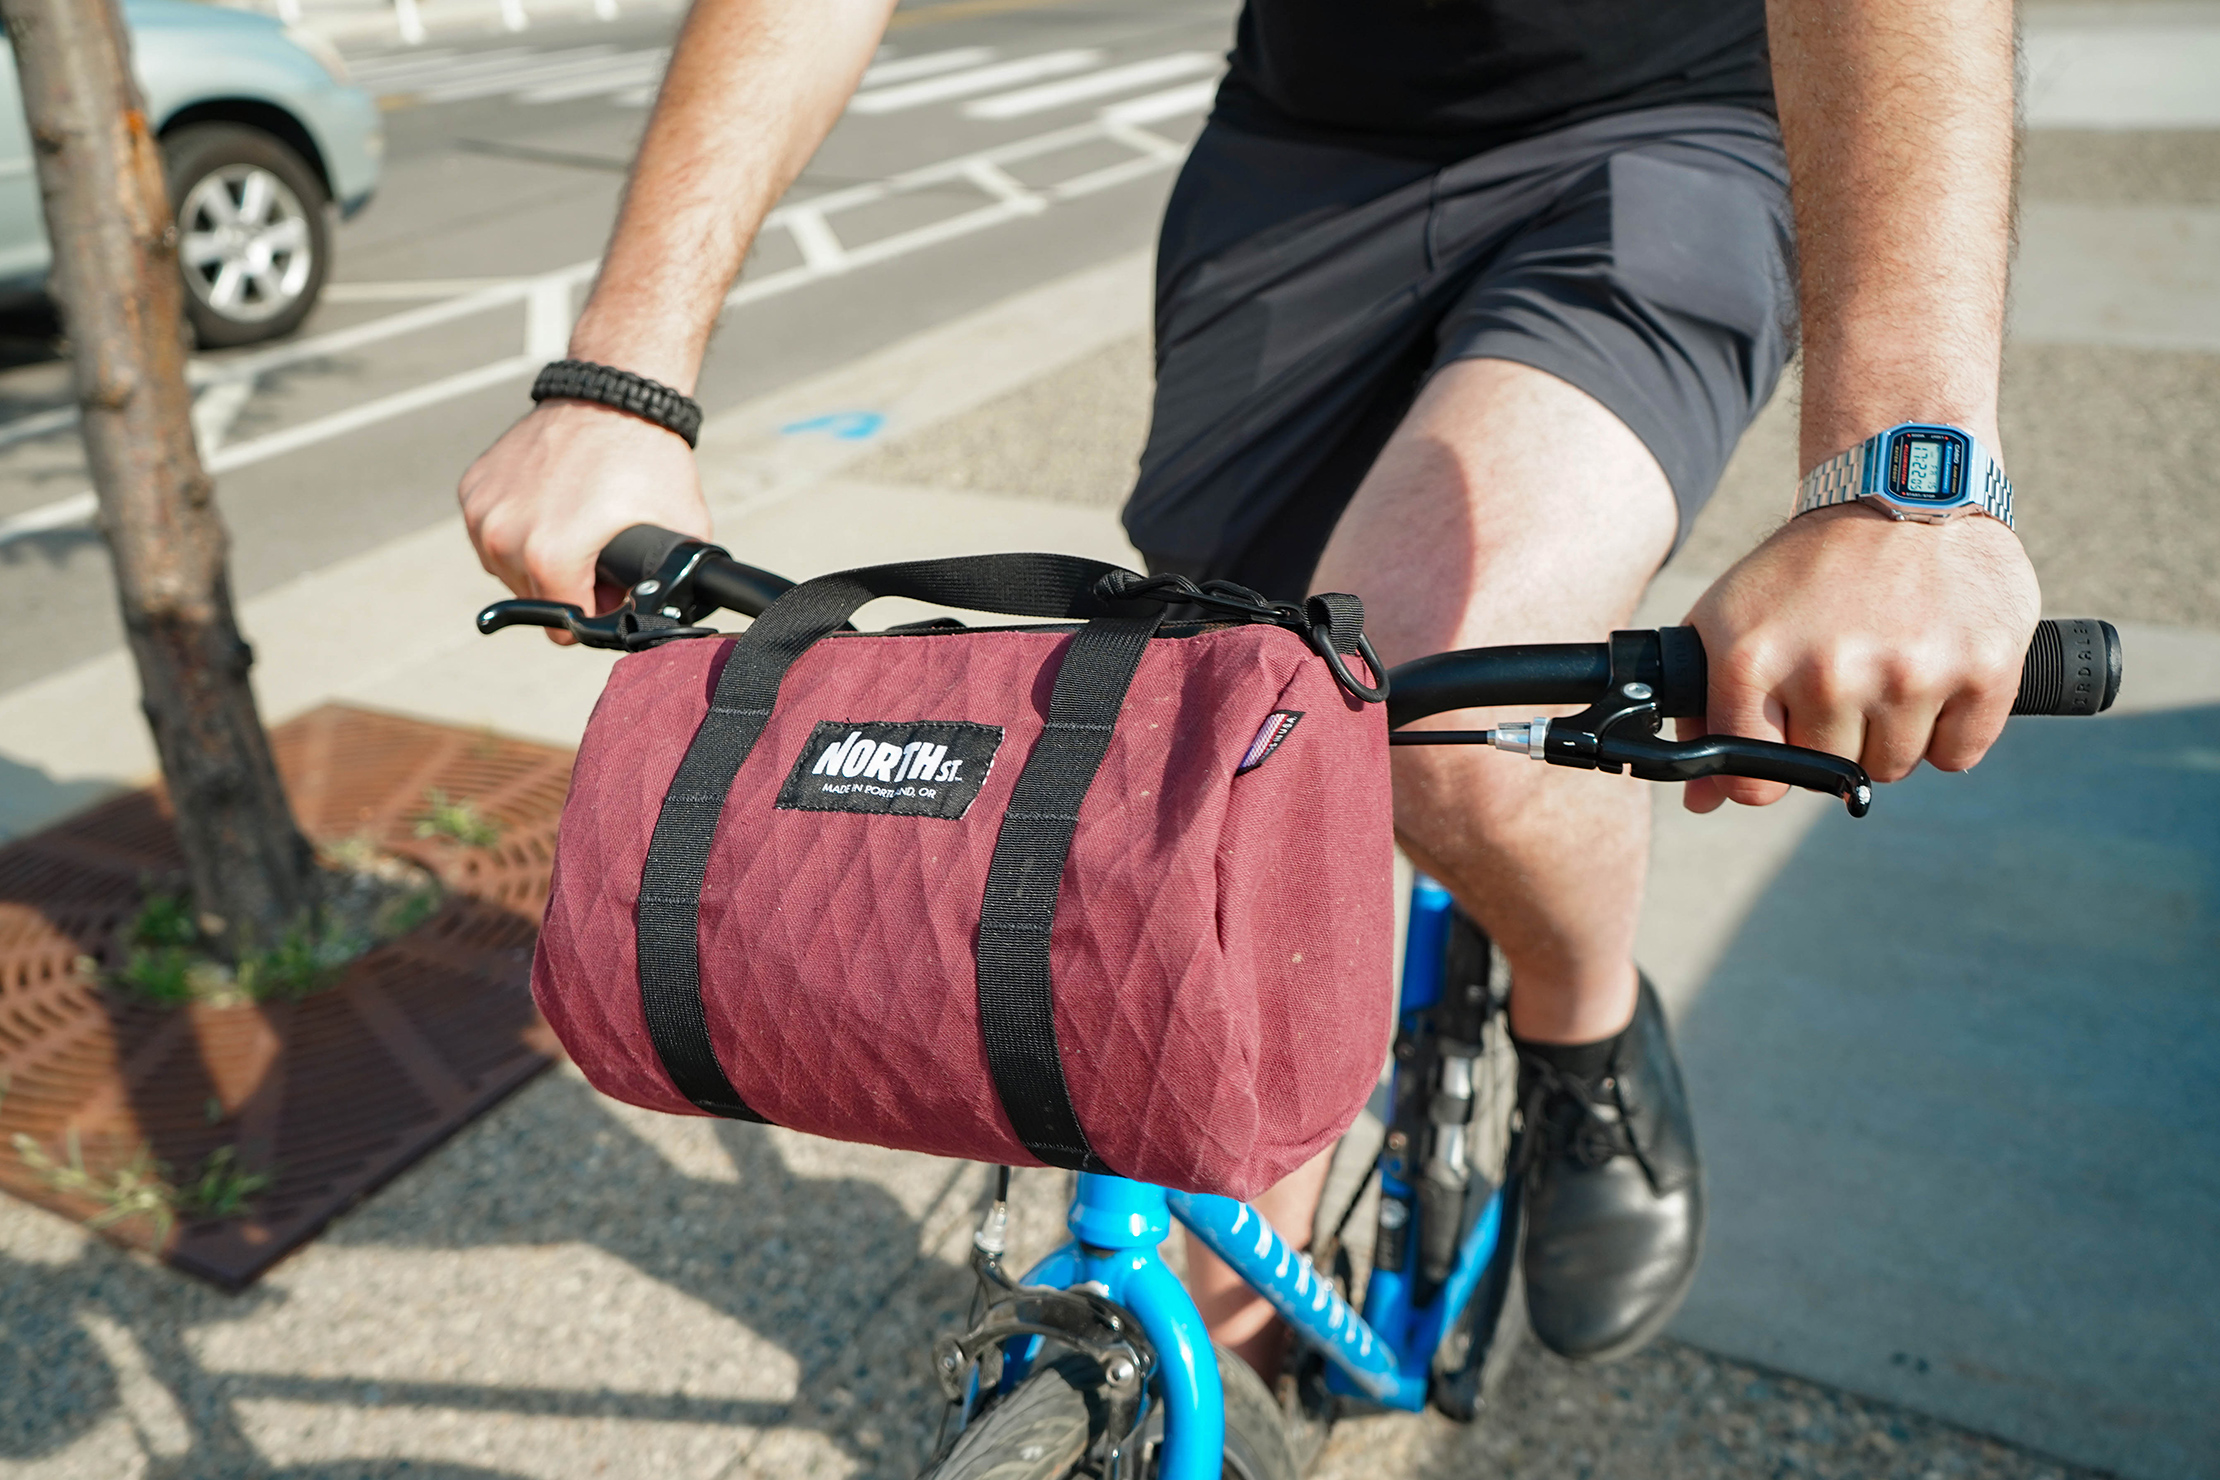 North St. Bags Scout 6L Duffle On Bike